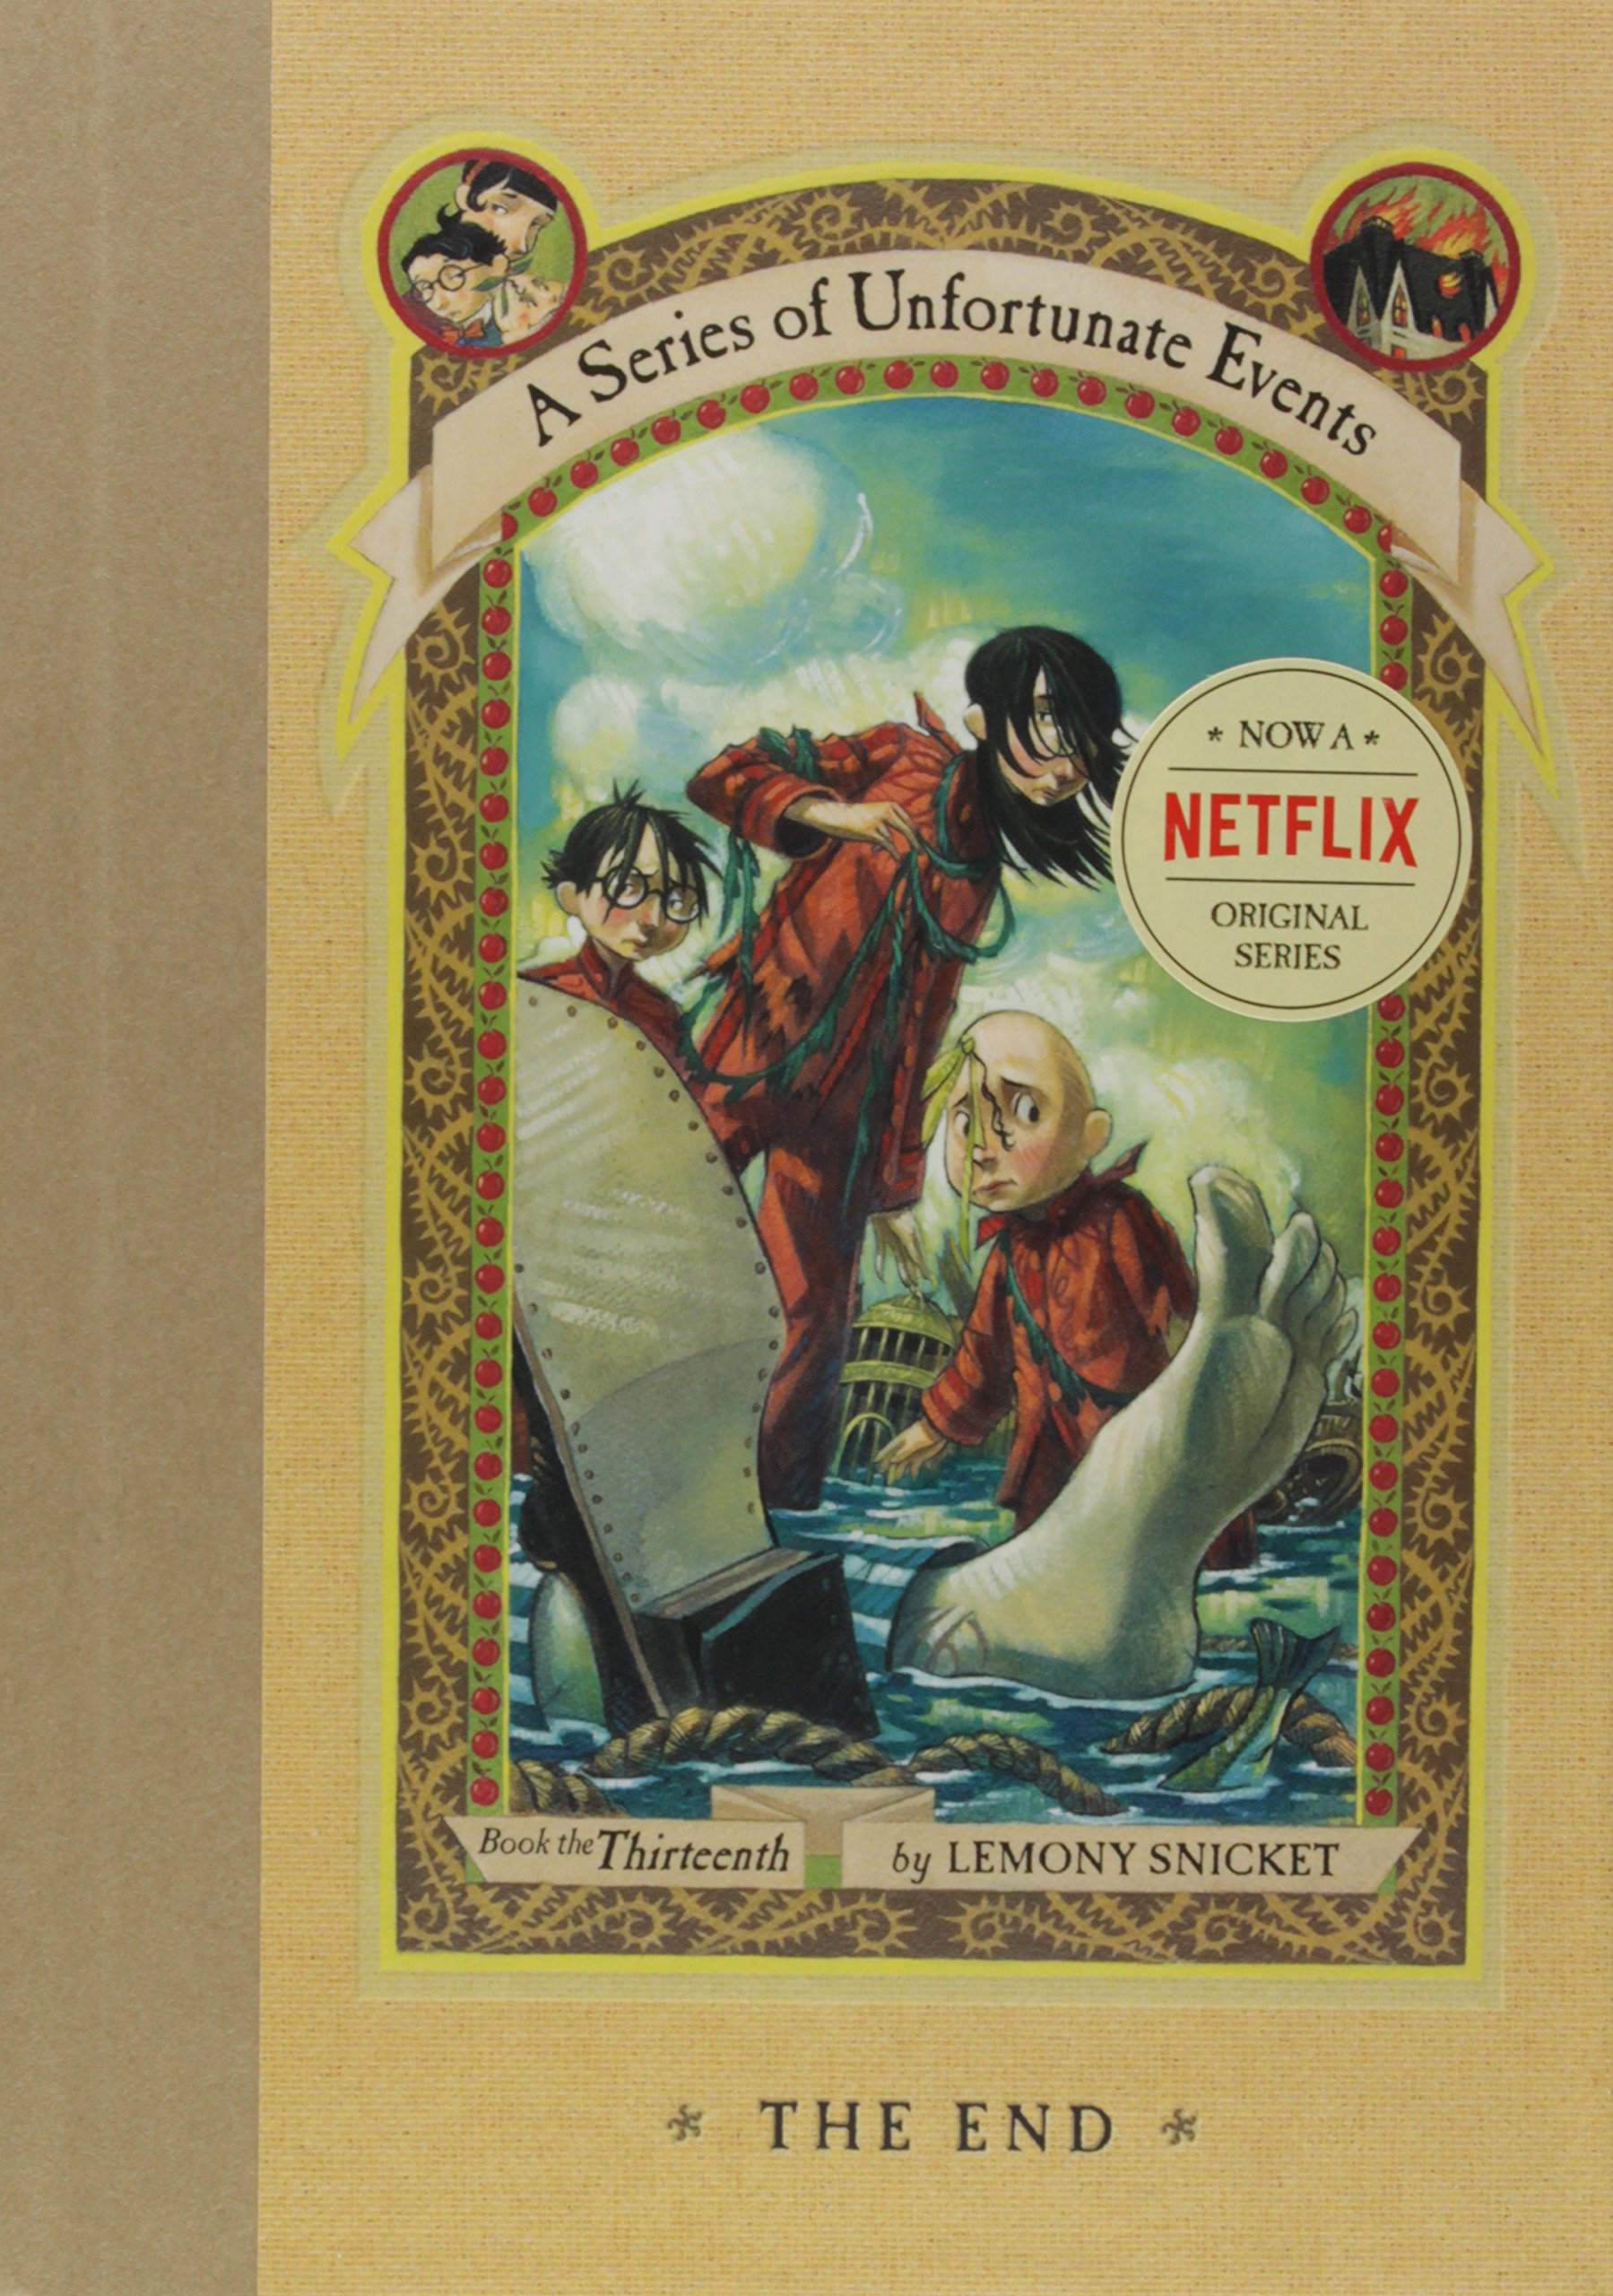 The Complete Wreck (A Series of Unfortunate Events, Books 1-13) by Harpercollins